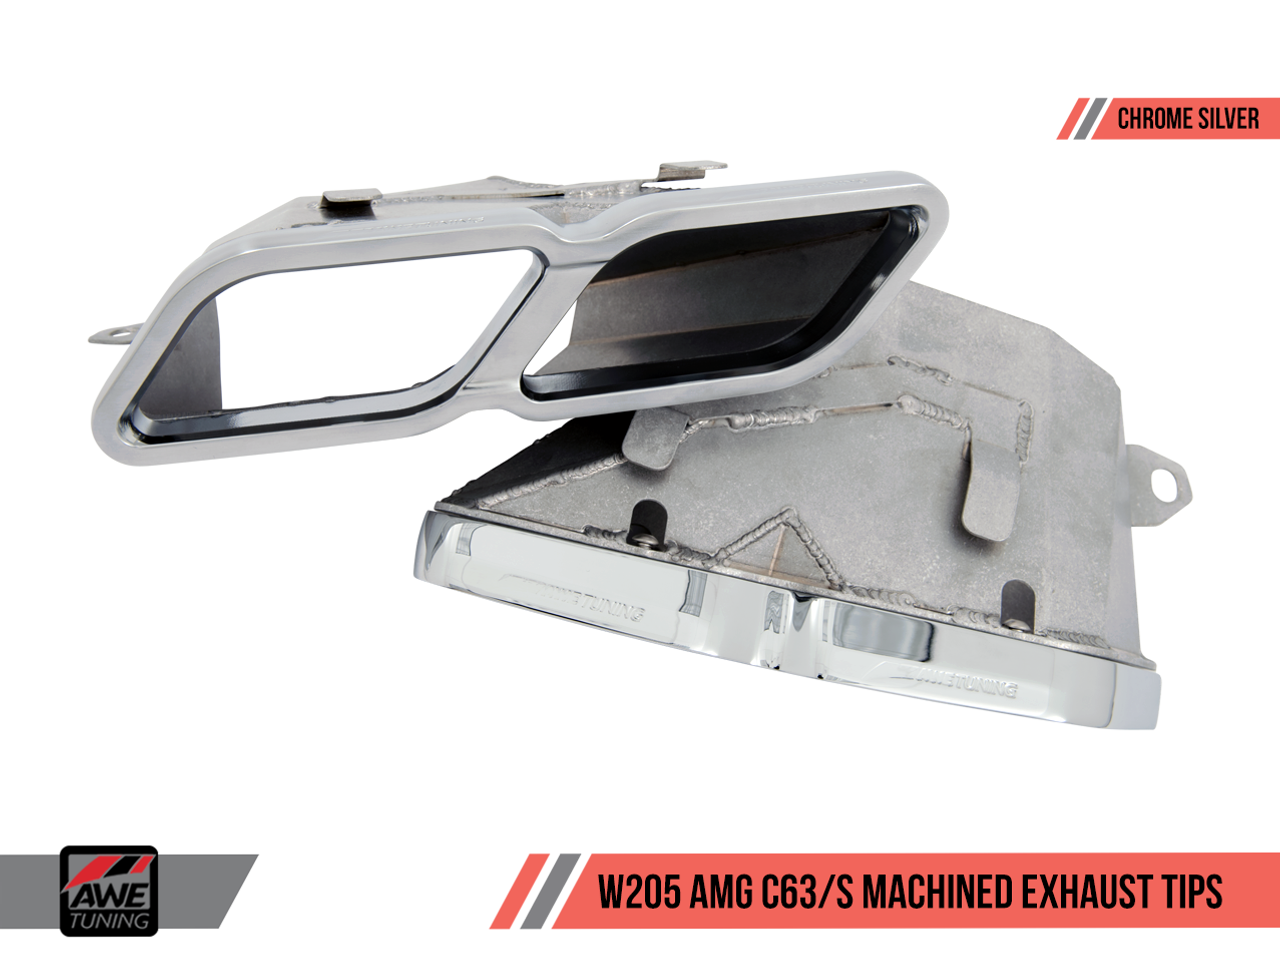 Optional Extra: AWE Tuning Machined Exhaust Tailpipe Trims - Chrome Silver